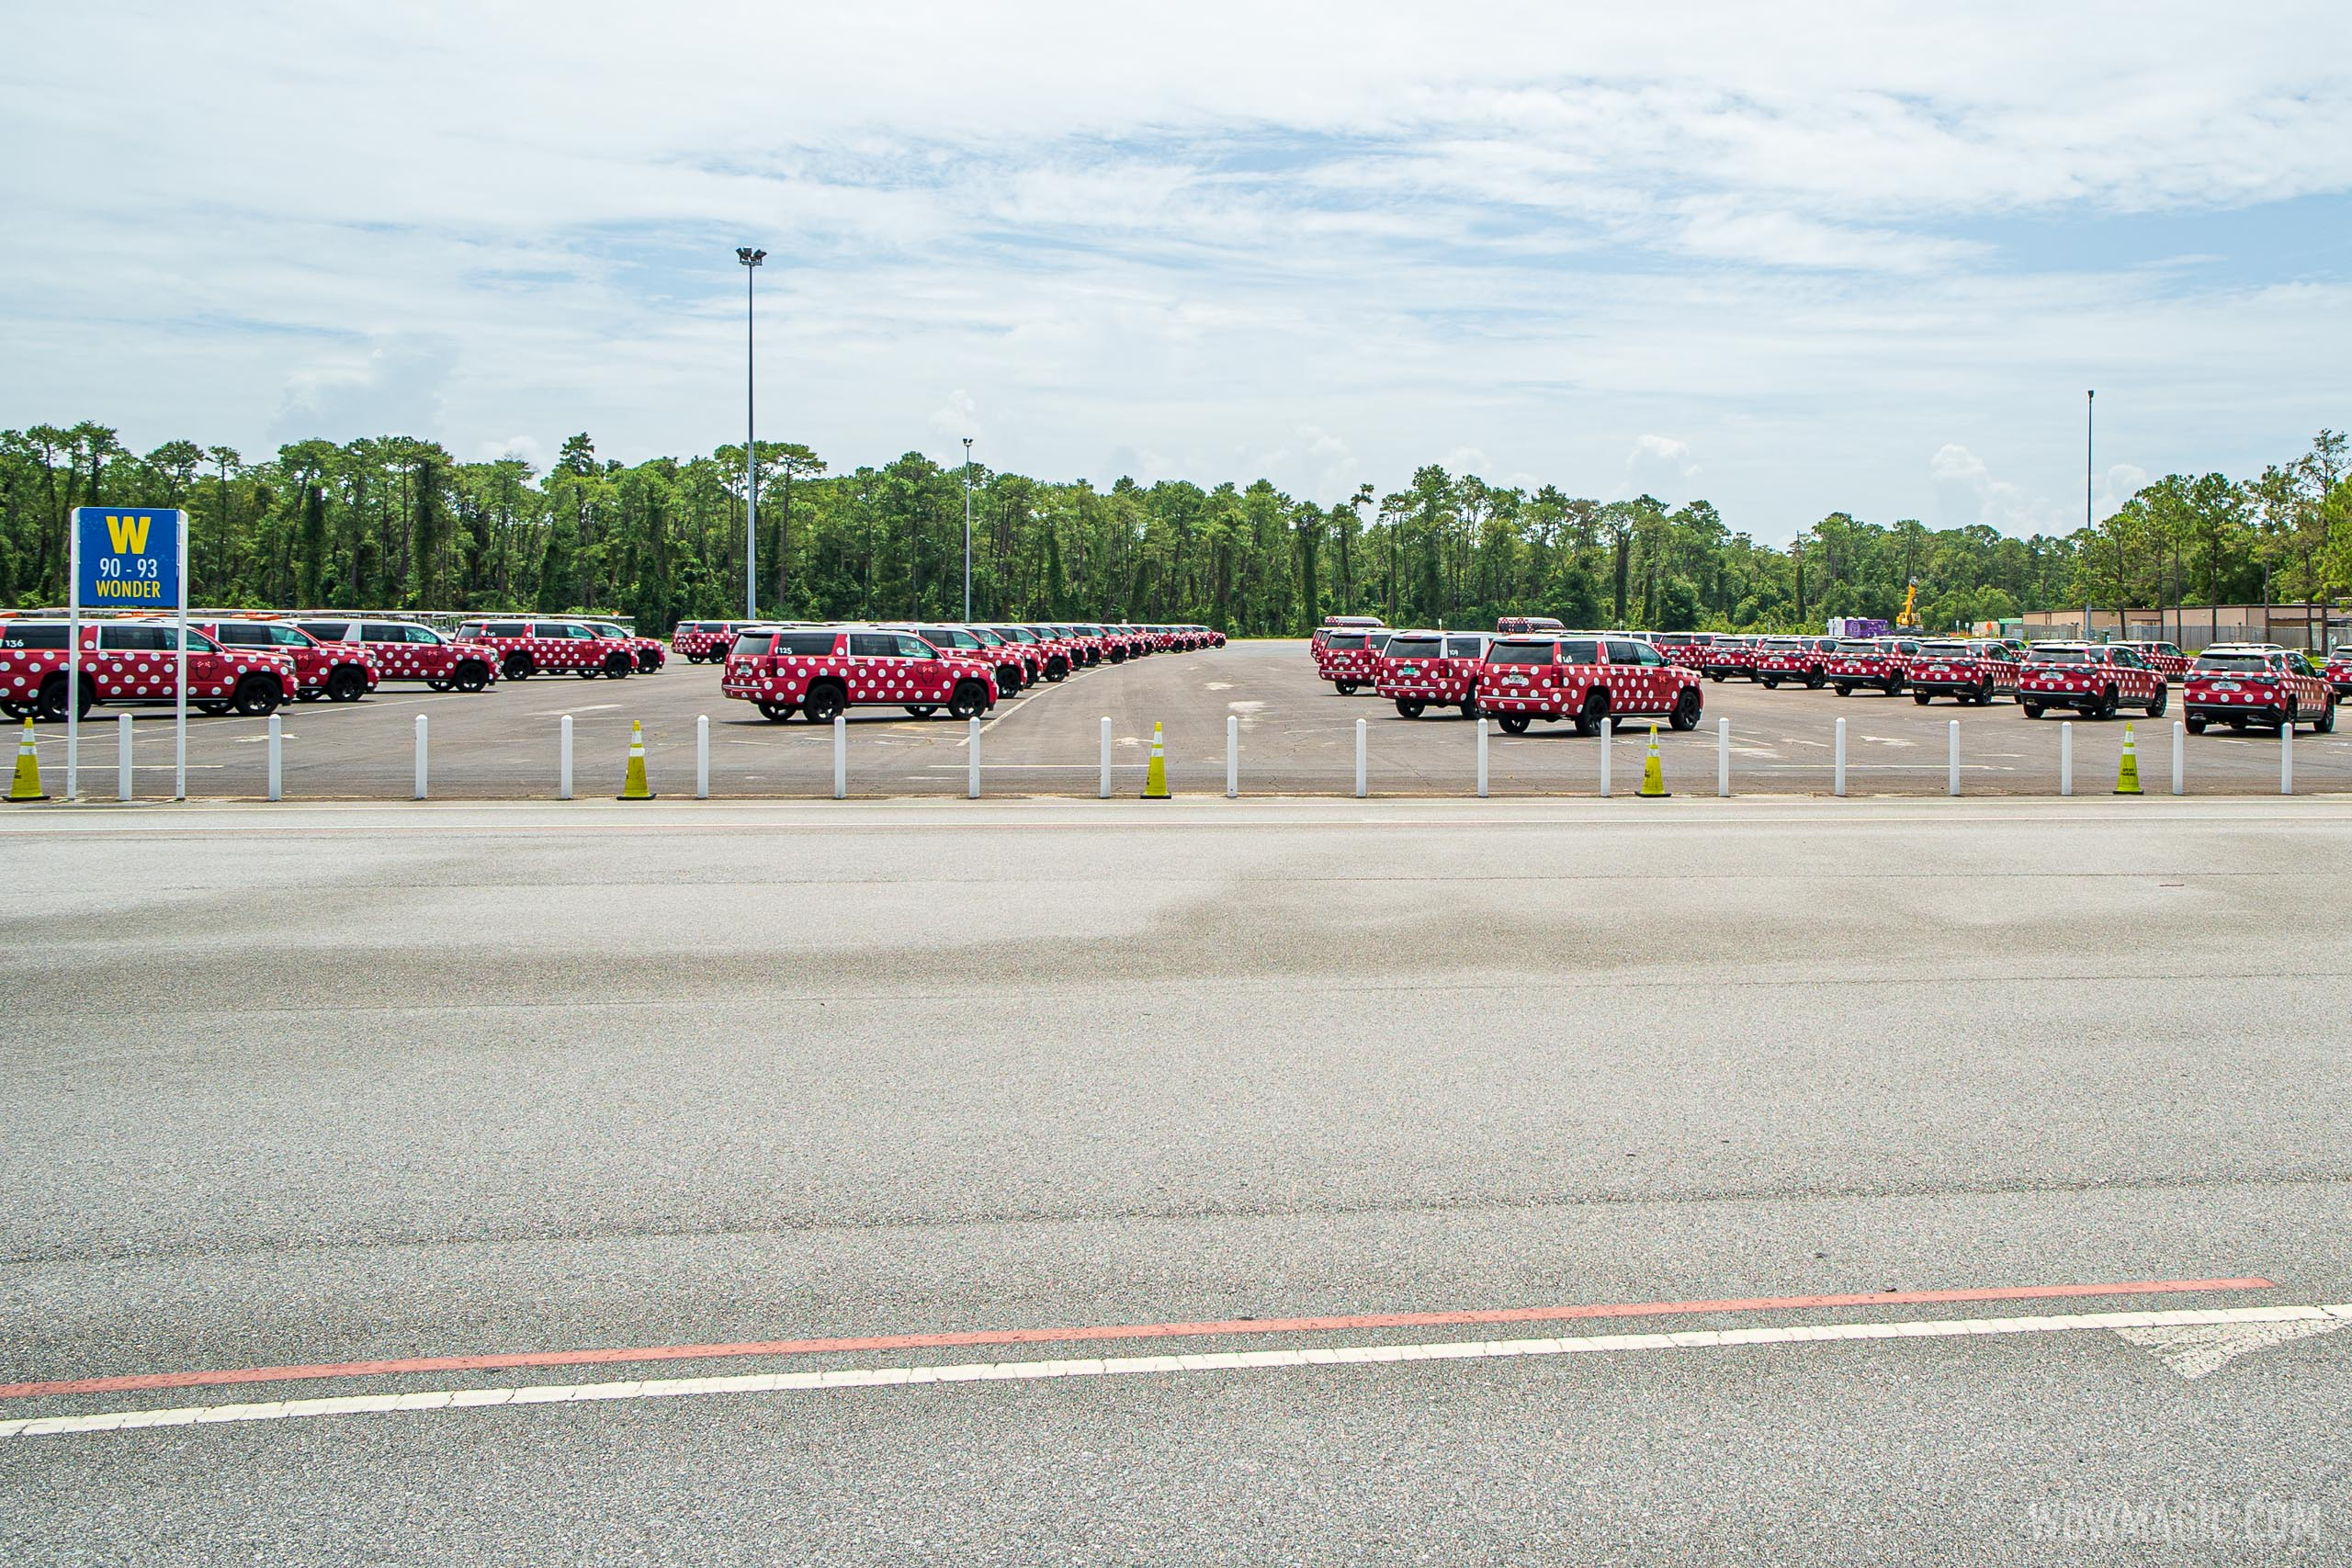 What remains of Disney's Minnie Van fleet is parked at EPCOT